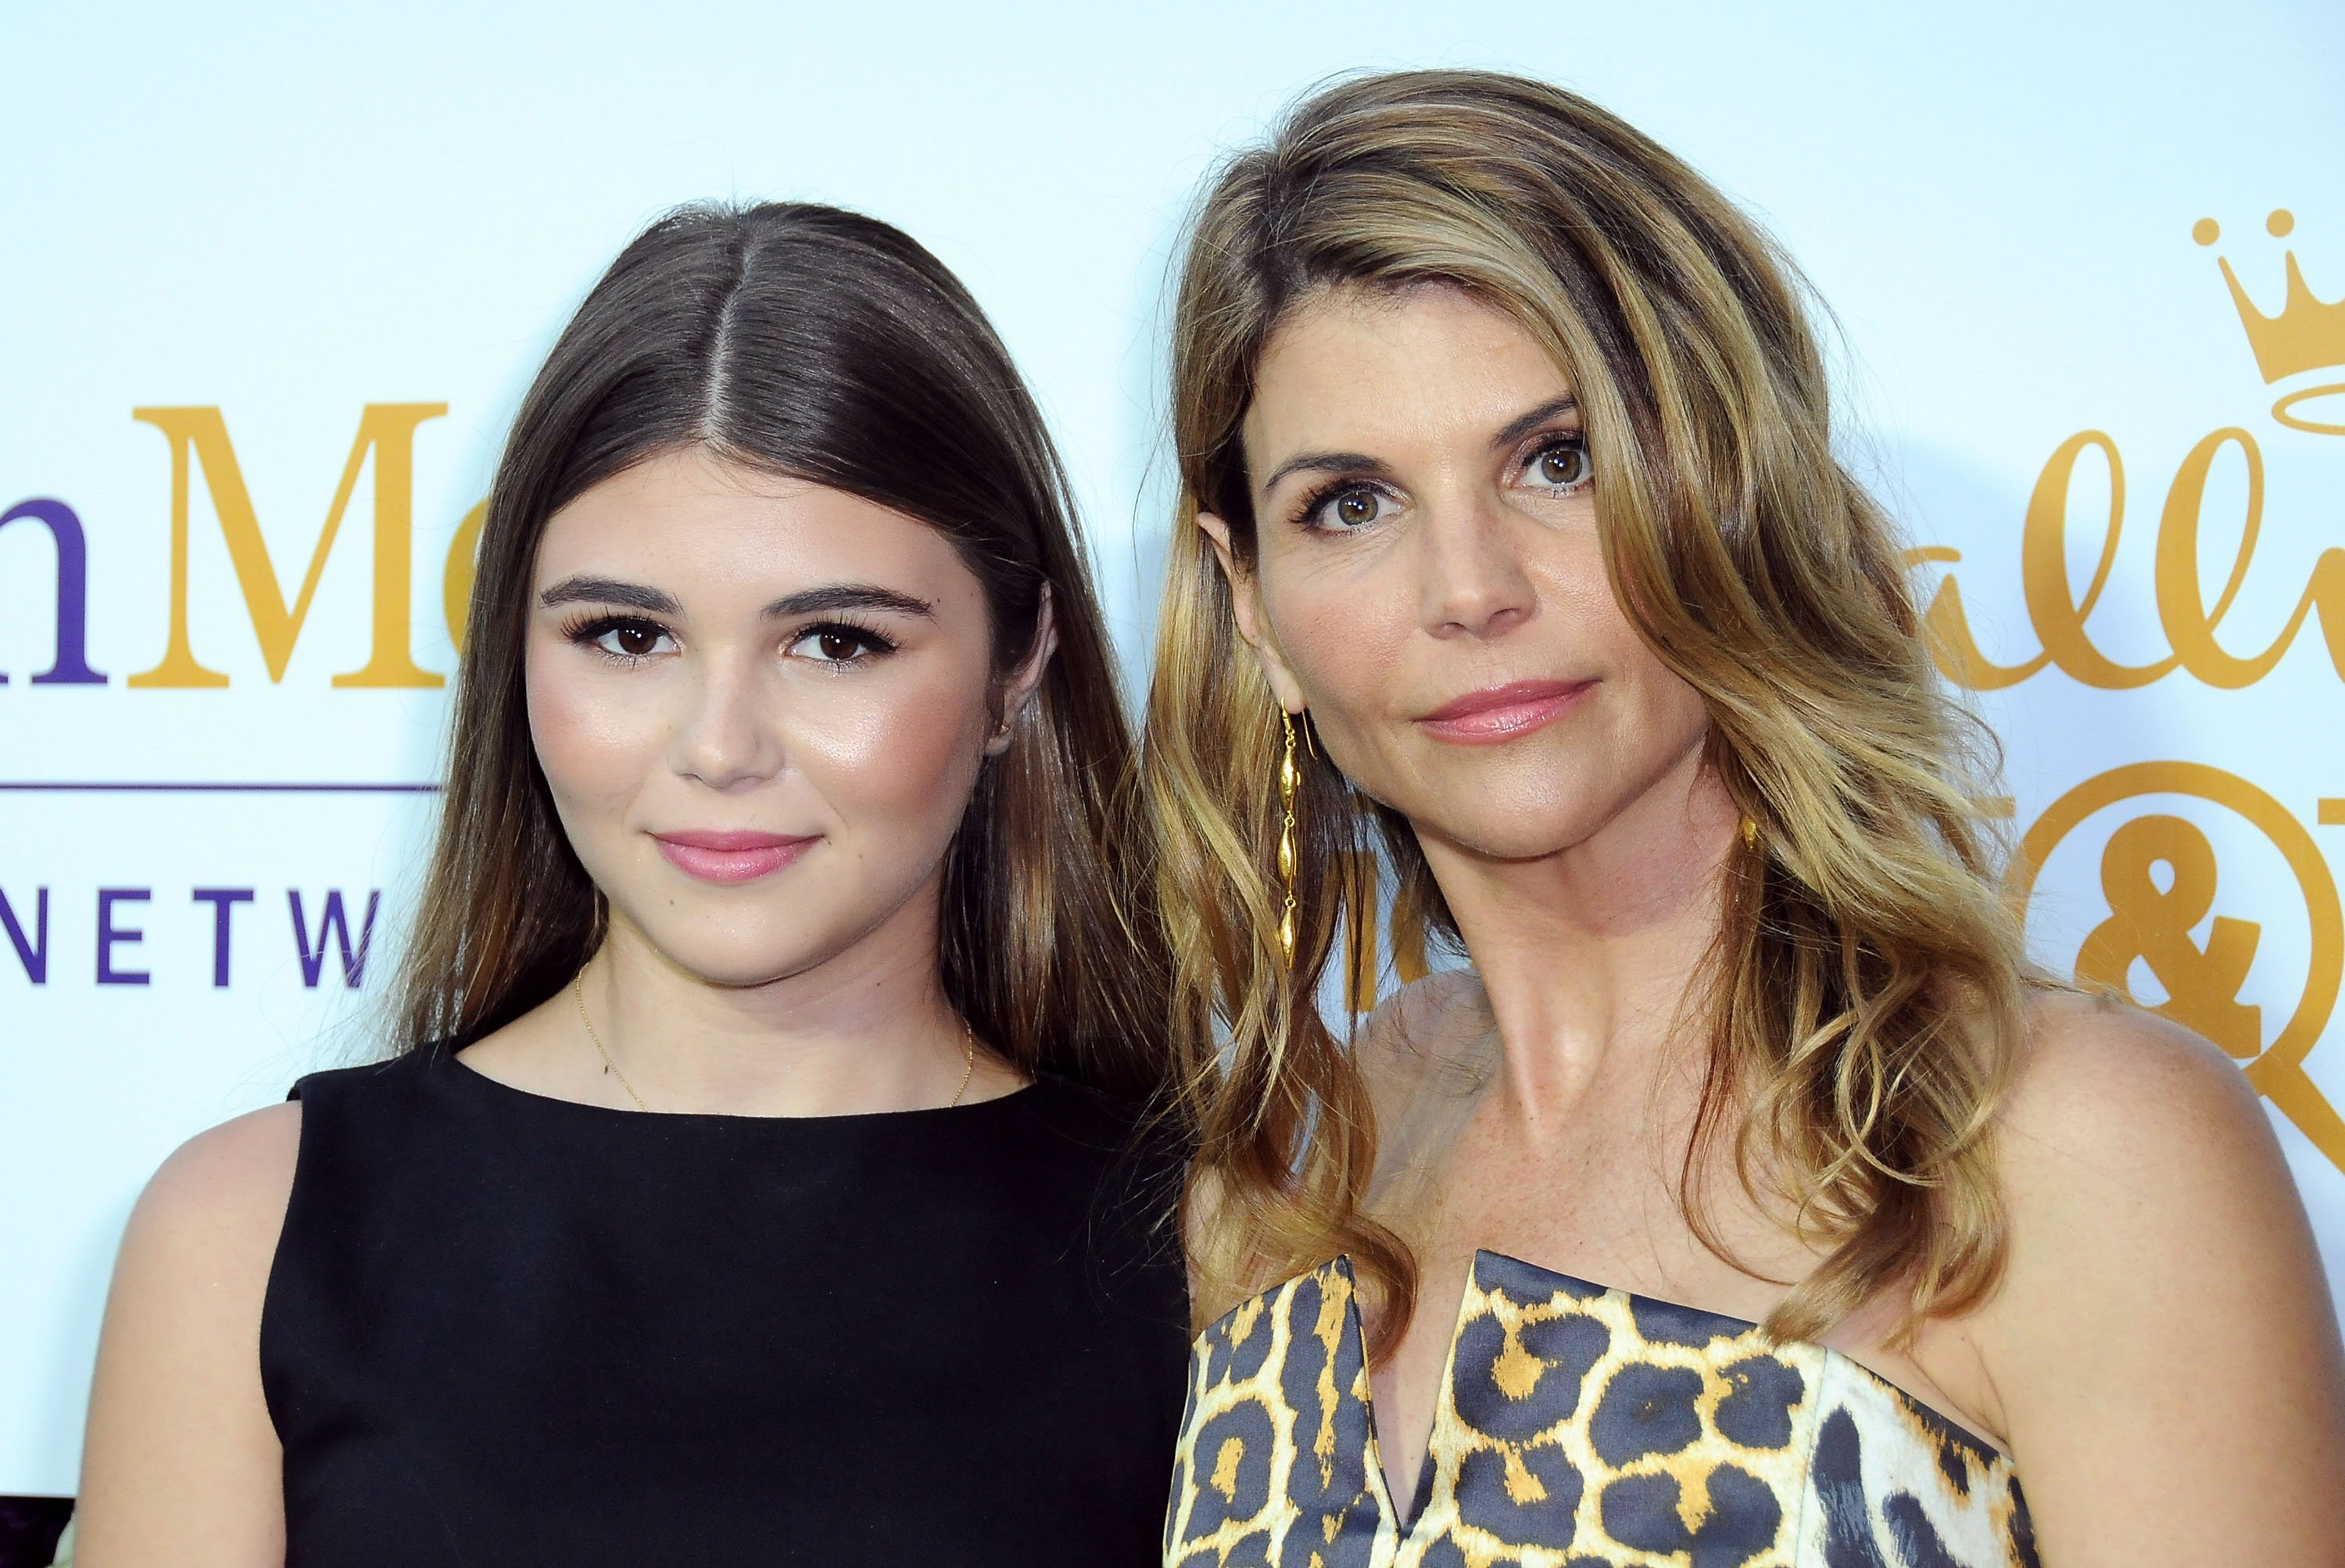 Lori Loughlin (R) and daughter Olivia Jade Giannulli attend the 2015 Summer TCA Tour - Hallmark Channel and Hallmark Movies And Mysteries on July 29, 2015 in Beverly Hills, California. | Source: Getty